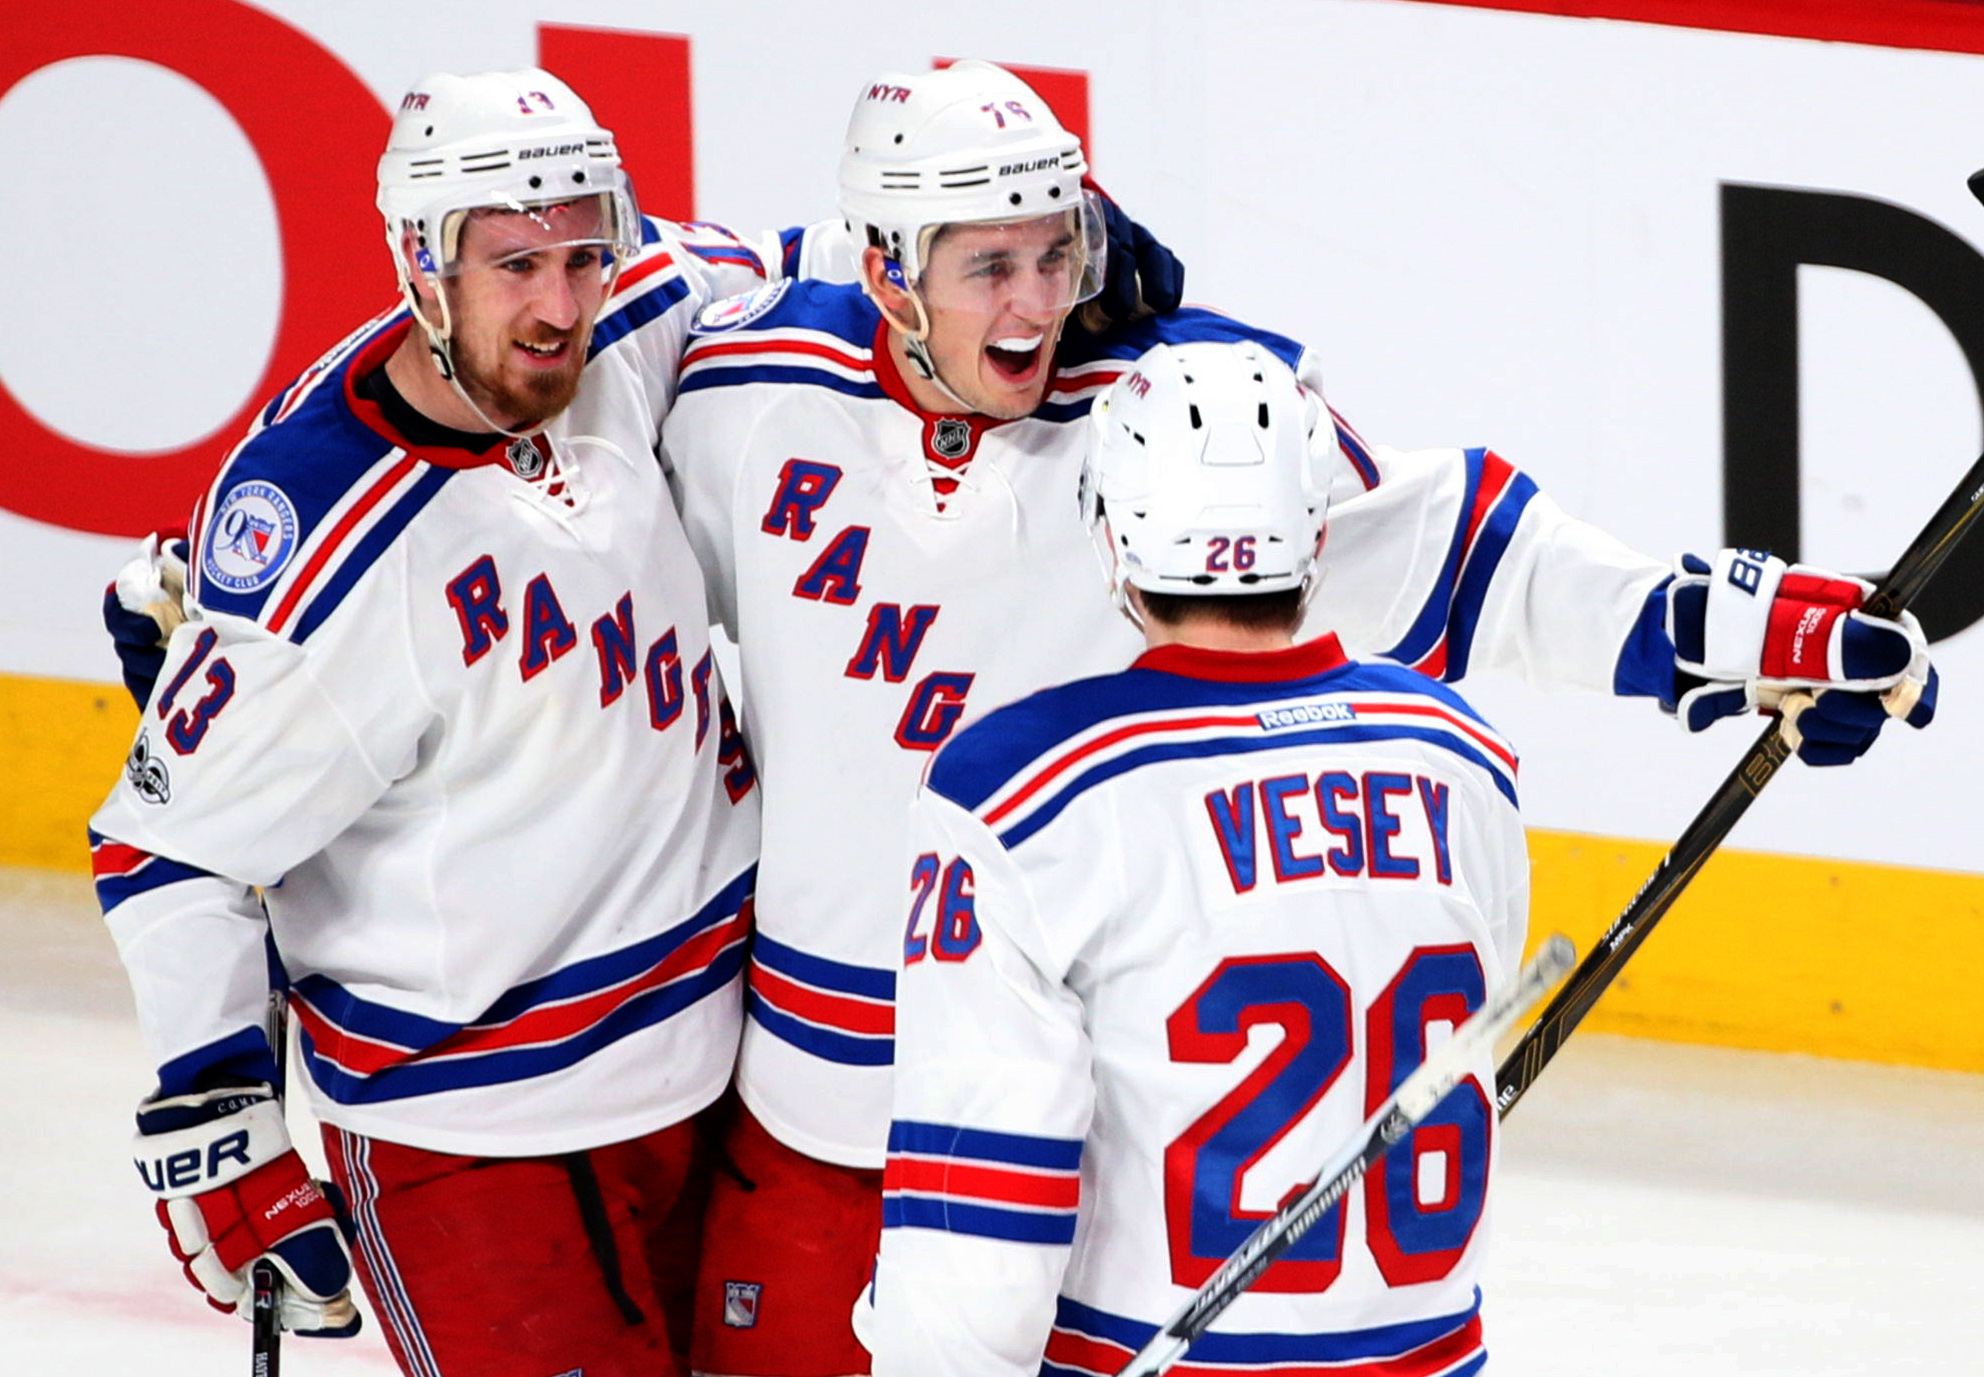 10028694-nhl-stanley-cup-playoffs-new-york-rangers-at-montreal-canadiens